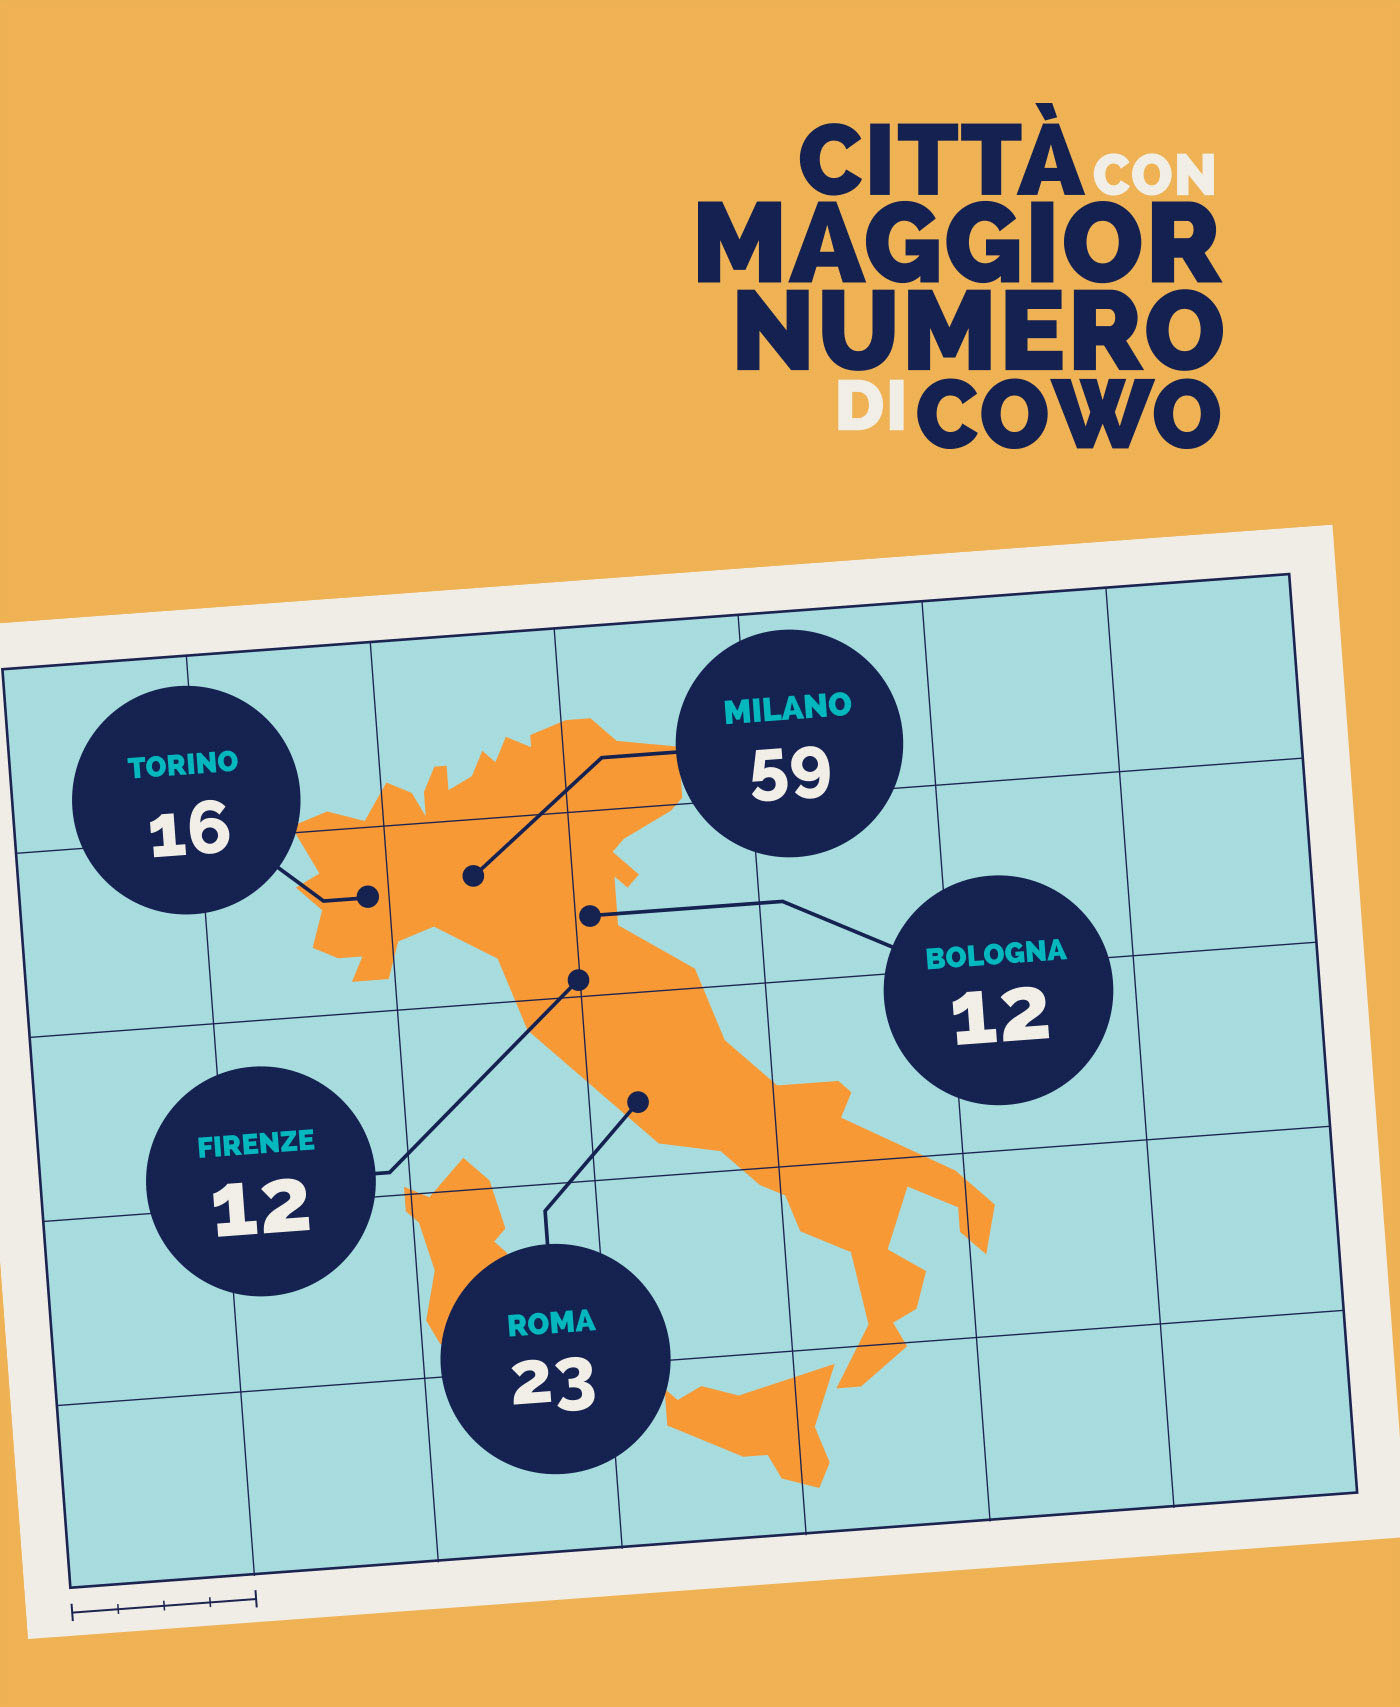 cowo coworking coworkers Italy infographic Data advantages disadvantages social san francisco Rome milan bologna firenze characters